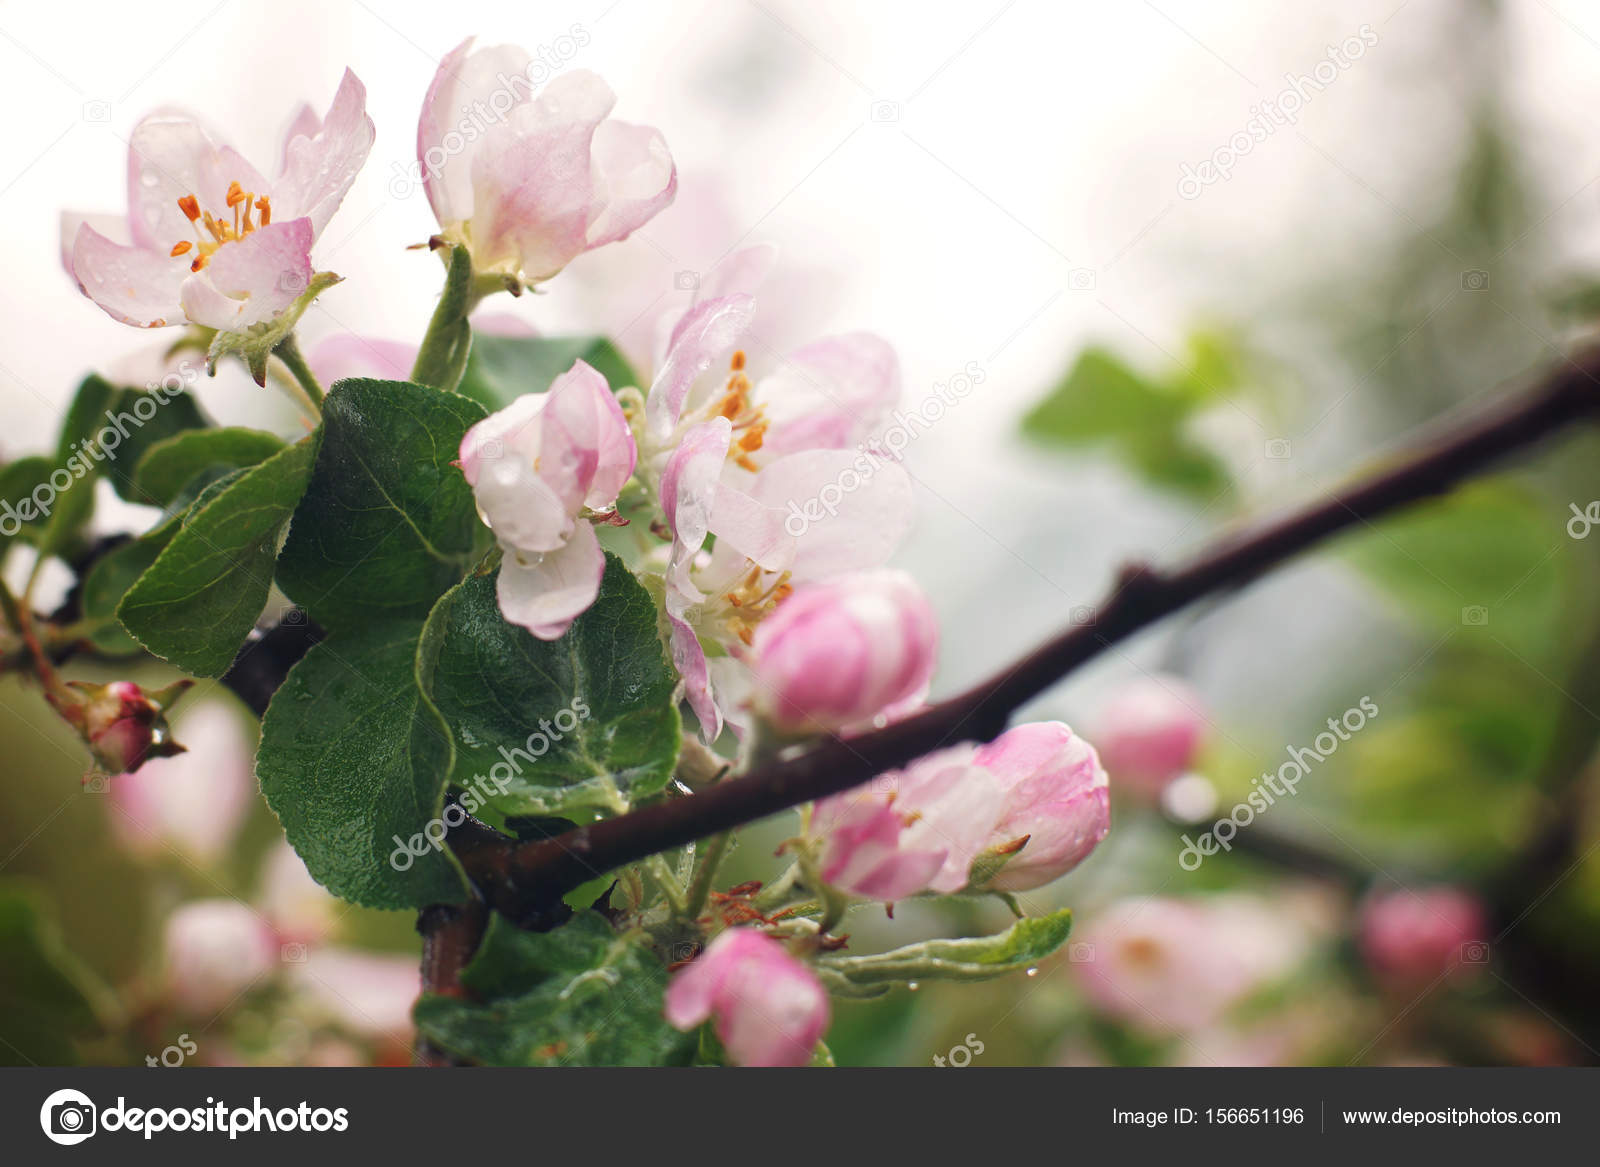 Blossoming Apple Tree After The Rain Pink Flowers And Leaves Are